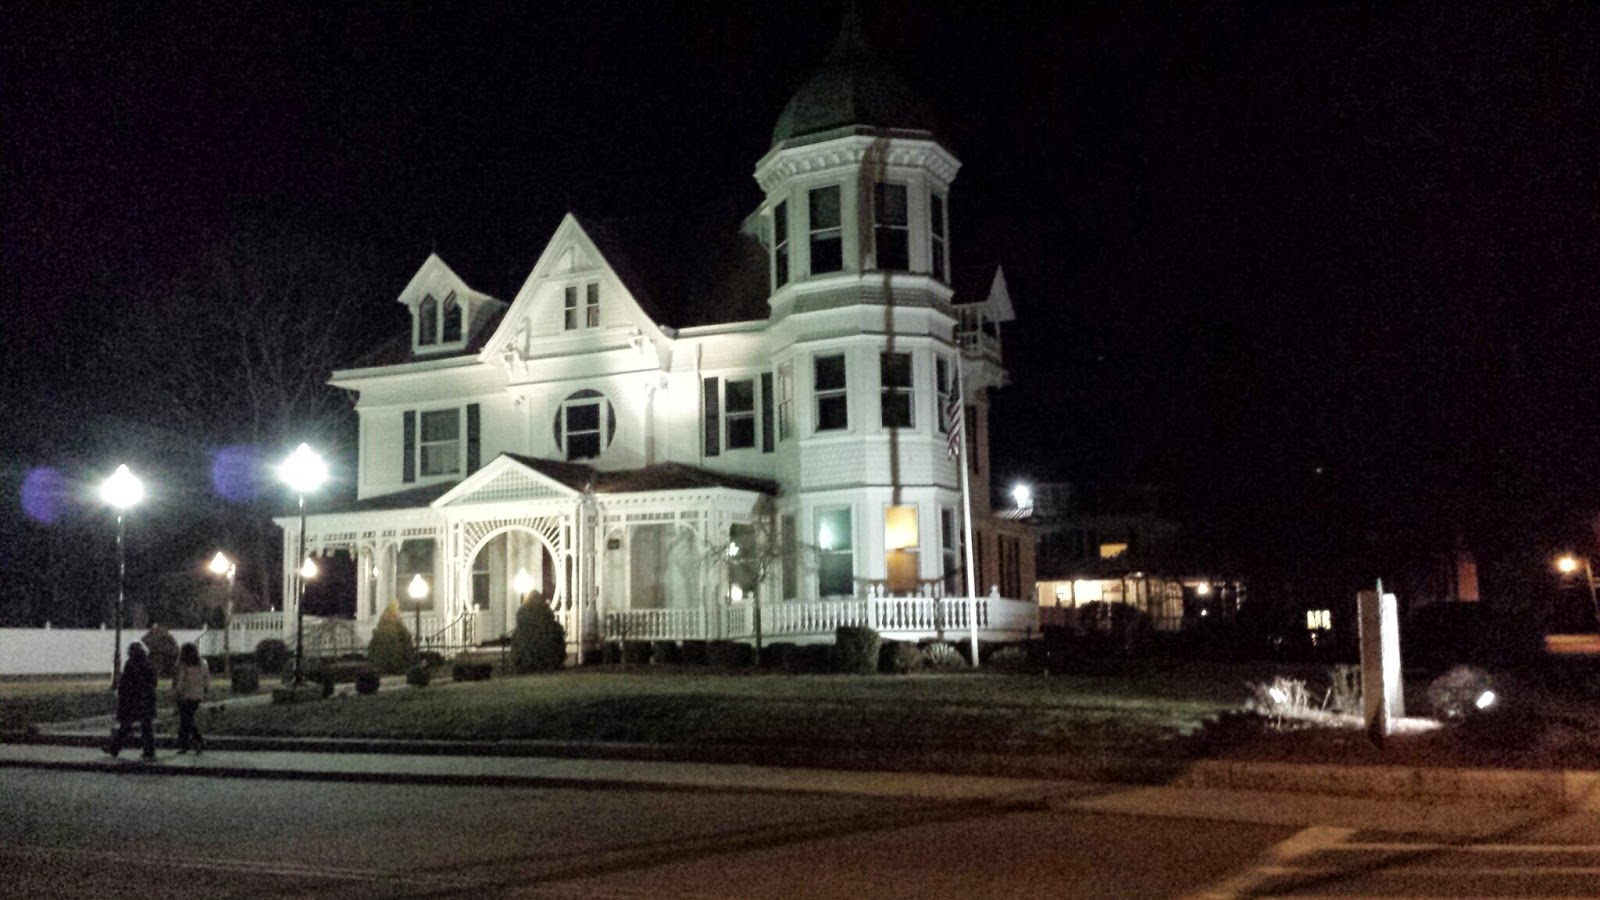 Ginley Funeral Home at night